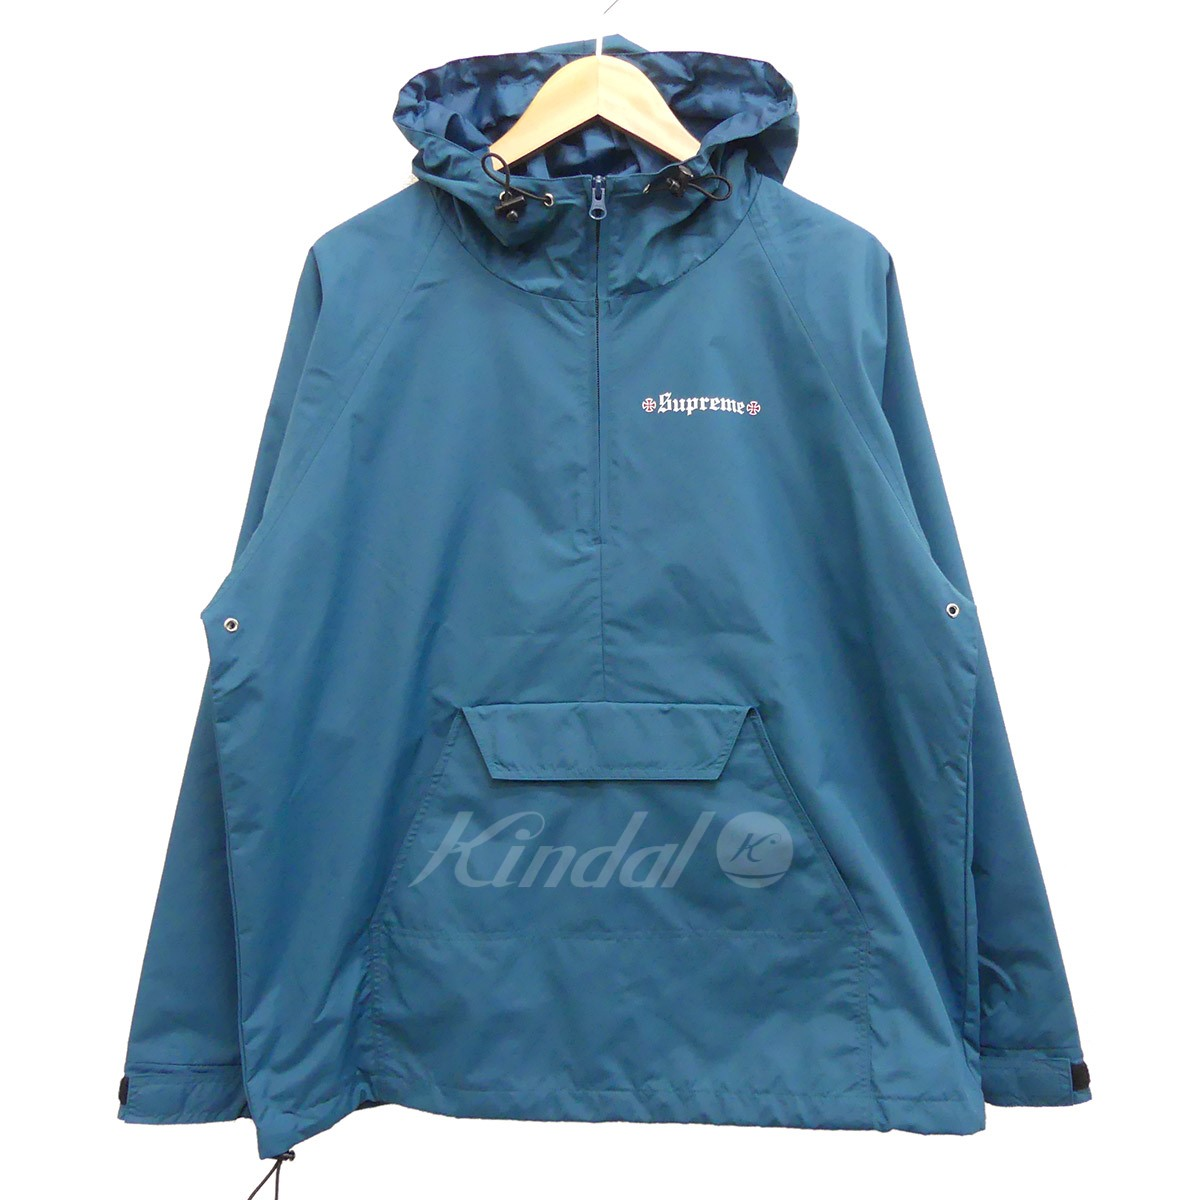 【中古】Supreme x Independent Nylon Anoral 2017AW ナイロンアノラック 【送料無料】 【073452】 【KIND1550】